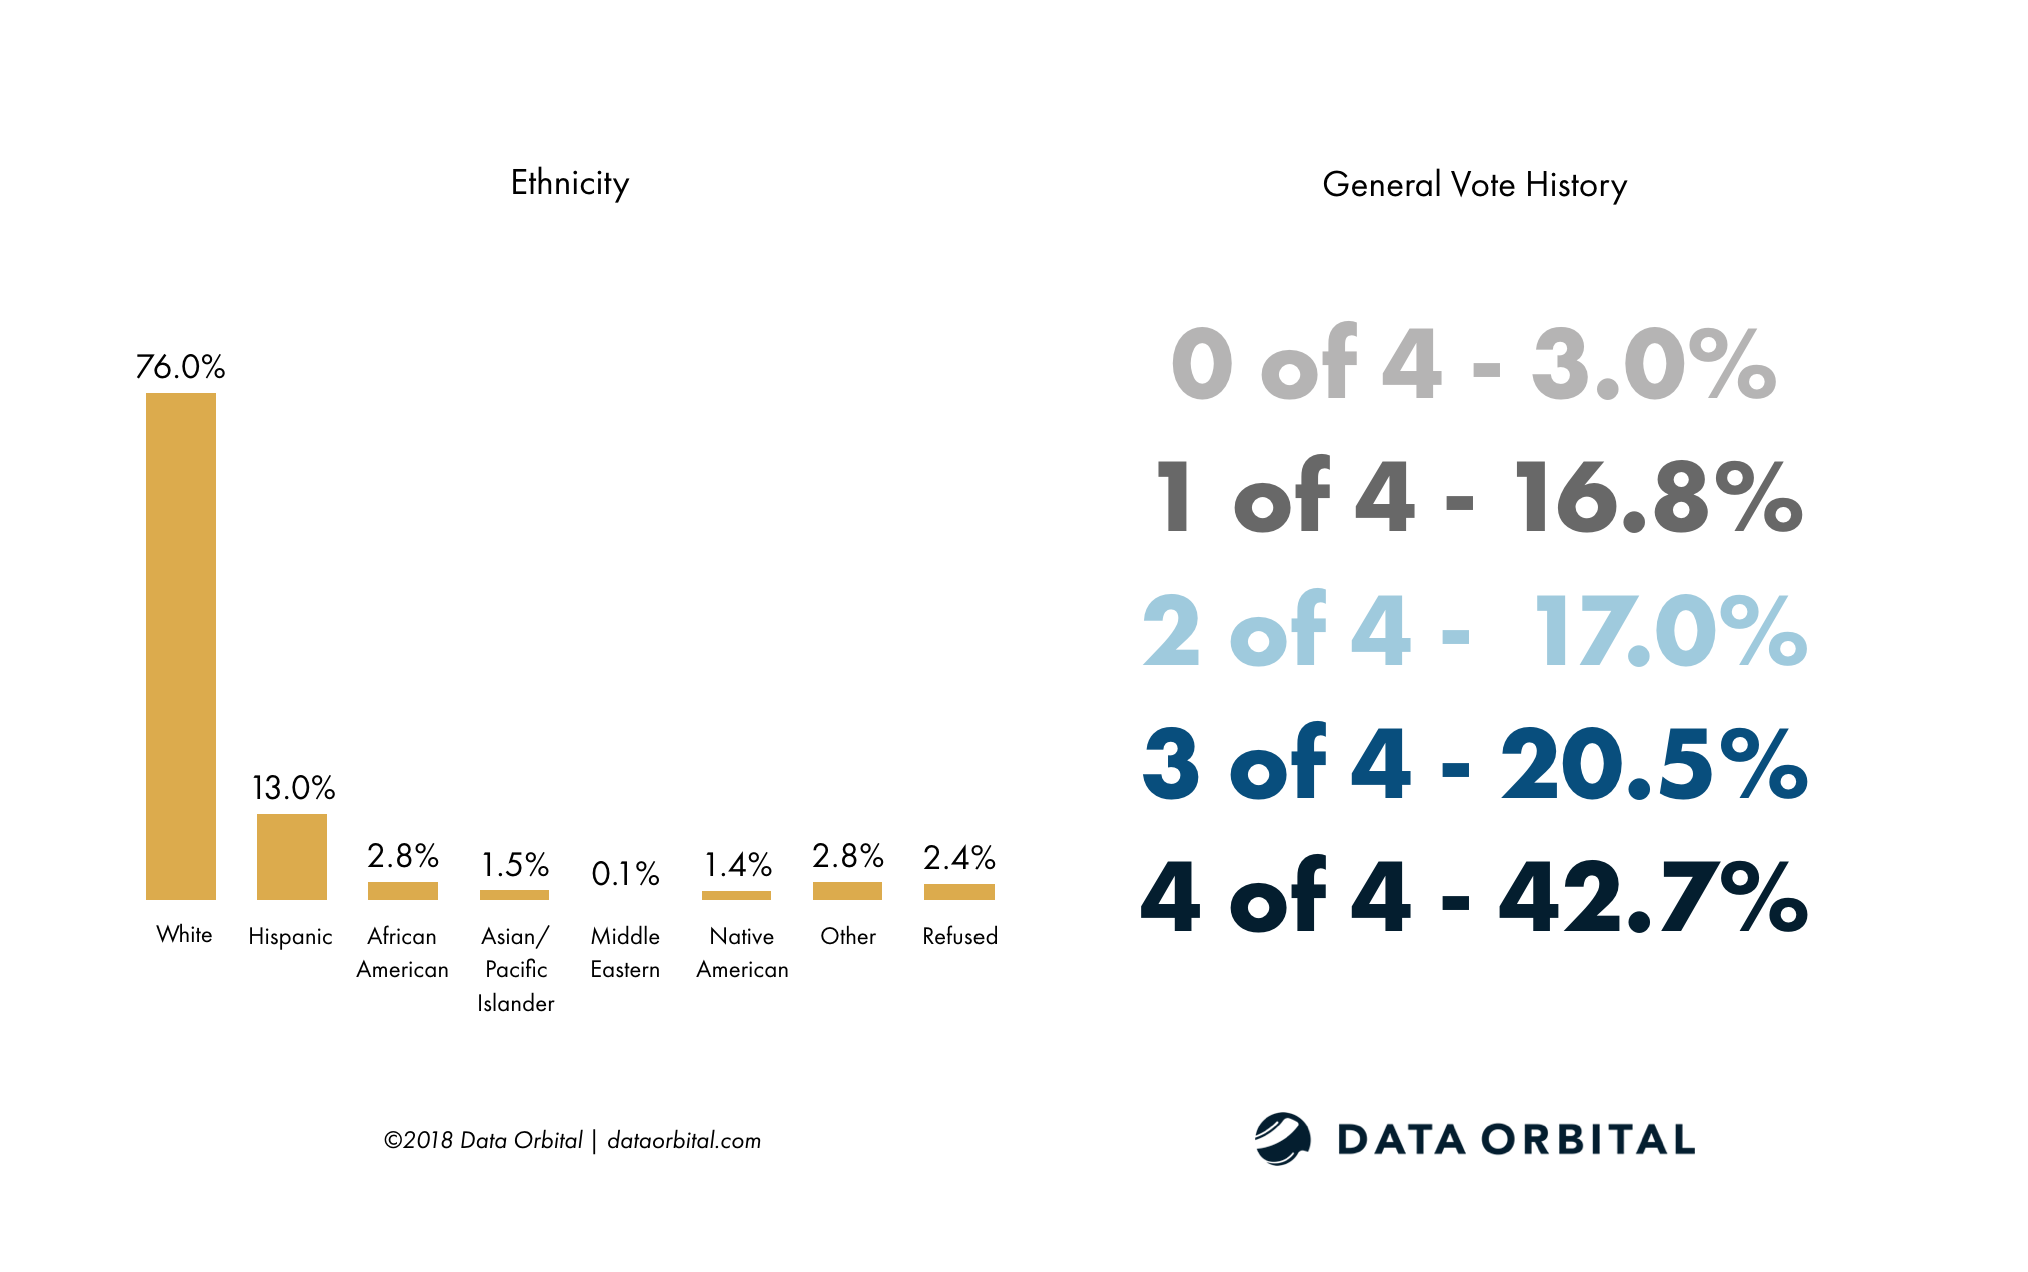 Data Orbital AZ Statewide Poll Demographics - Ethnicity and General Vote History